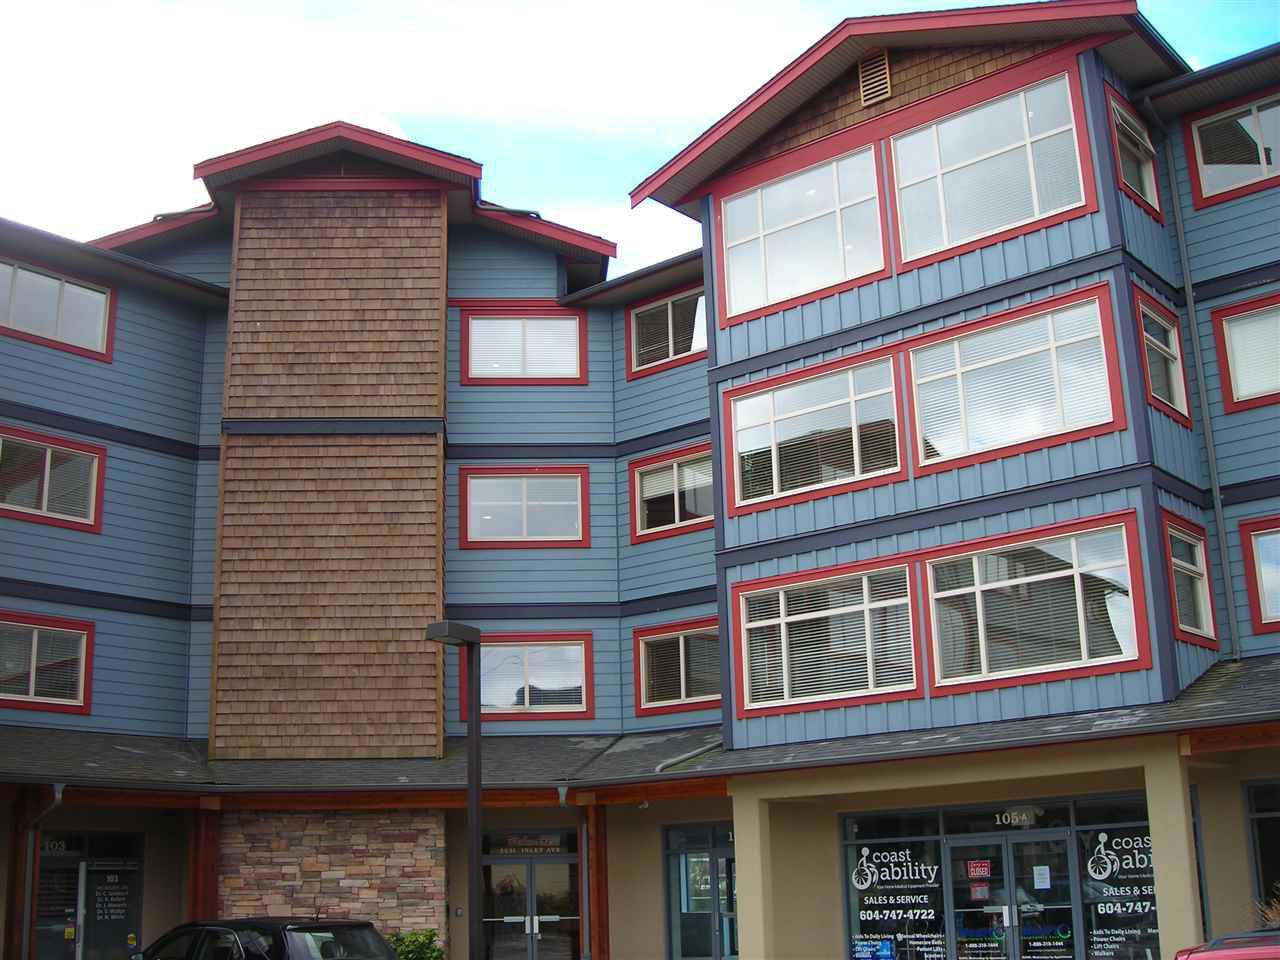 Main Photo: 406 5631 INLET Avenue in Sechelt: Sechelt District Condo for sale (Sunshine Coast)  : MLS®# R2118264